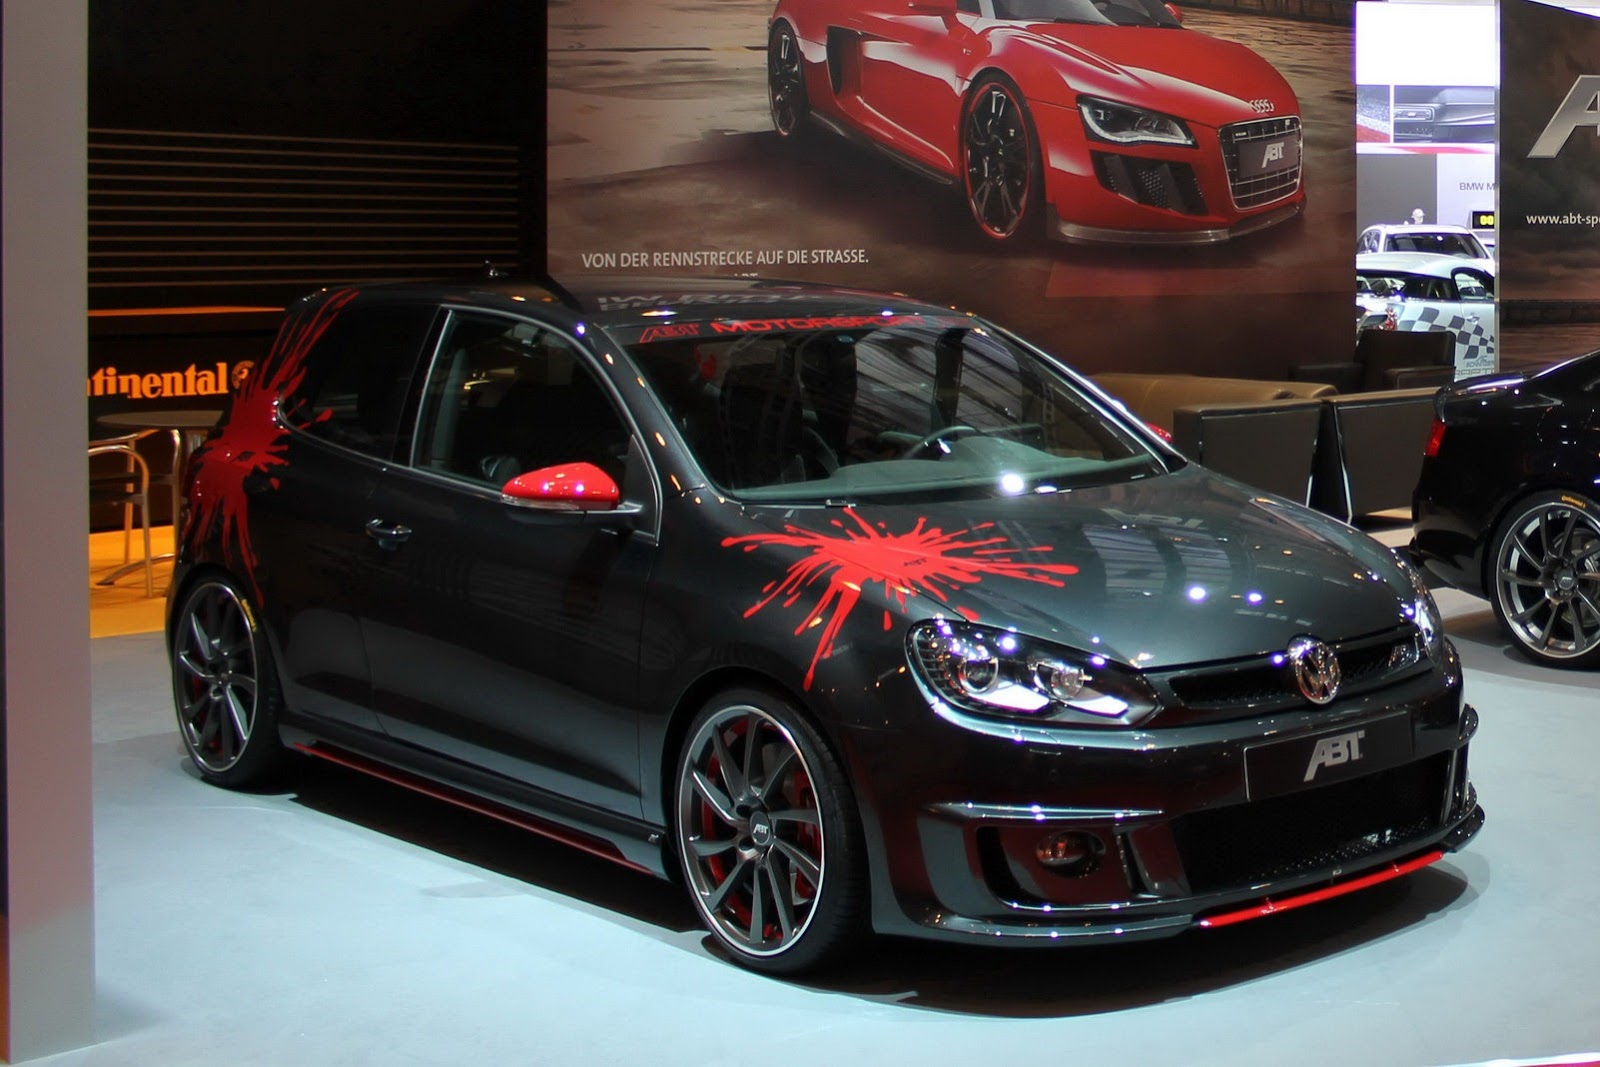 Volkswagen Golf GTI Last Edition by ABT